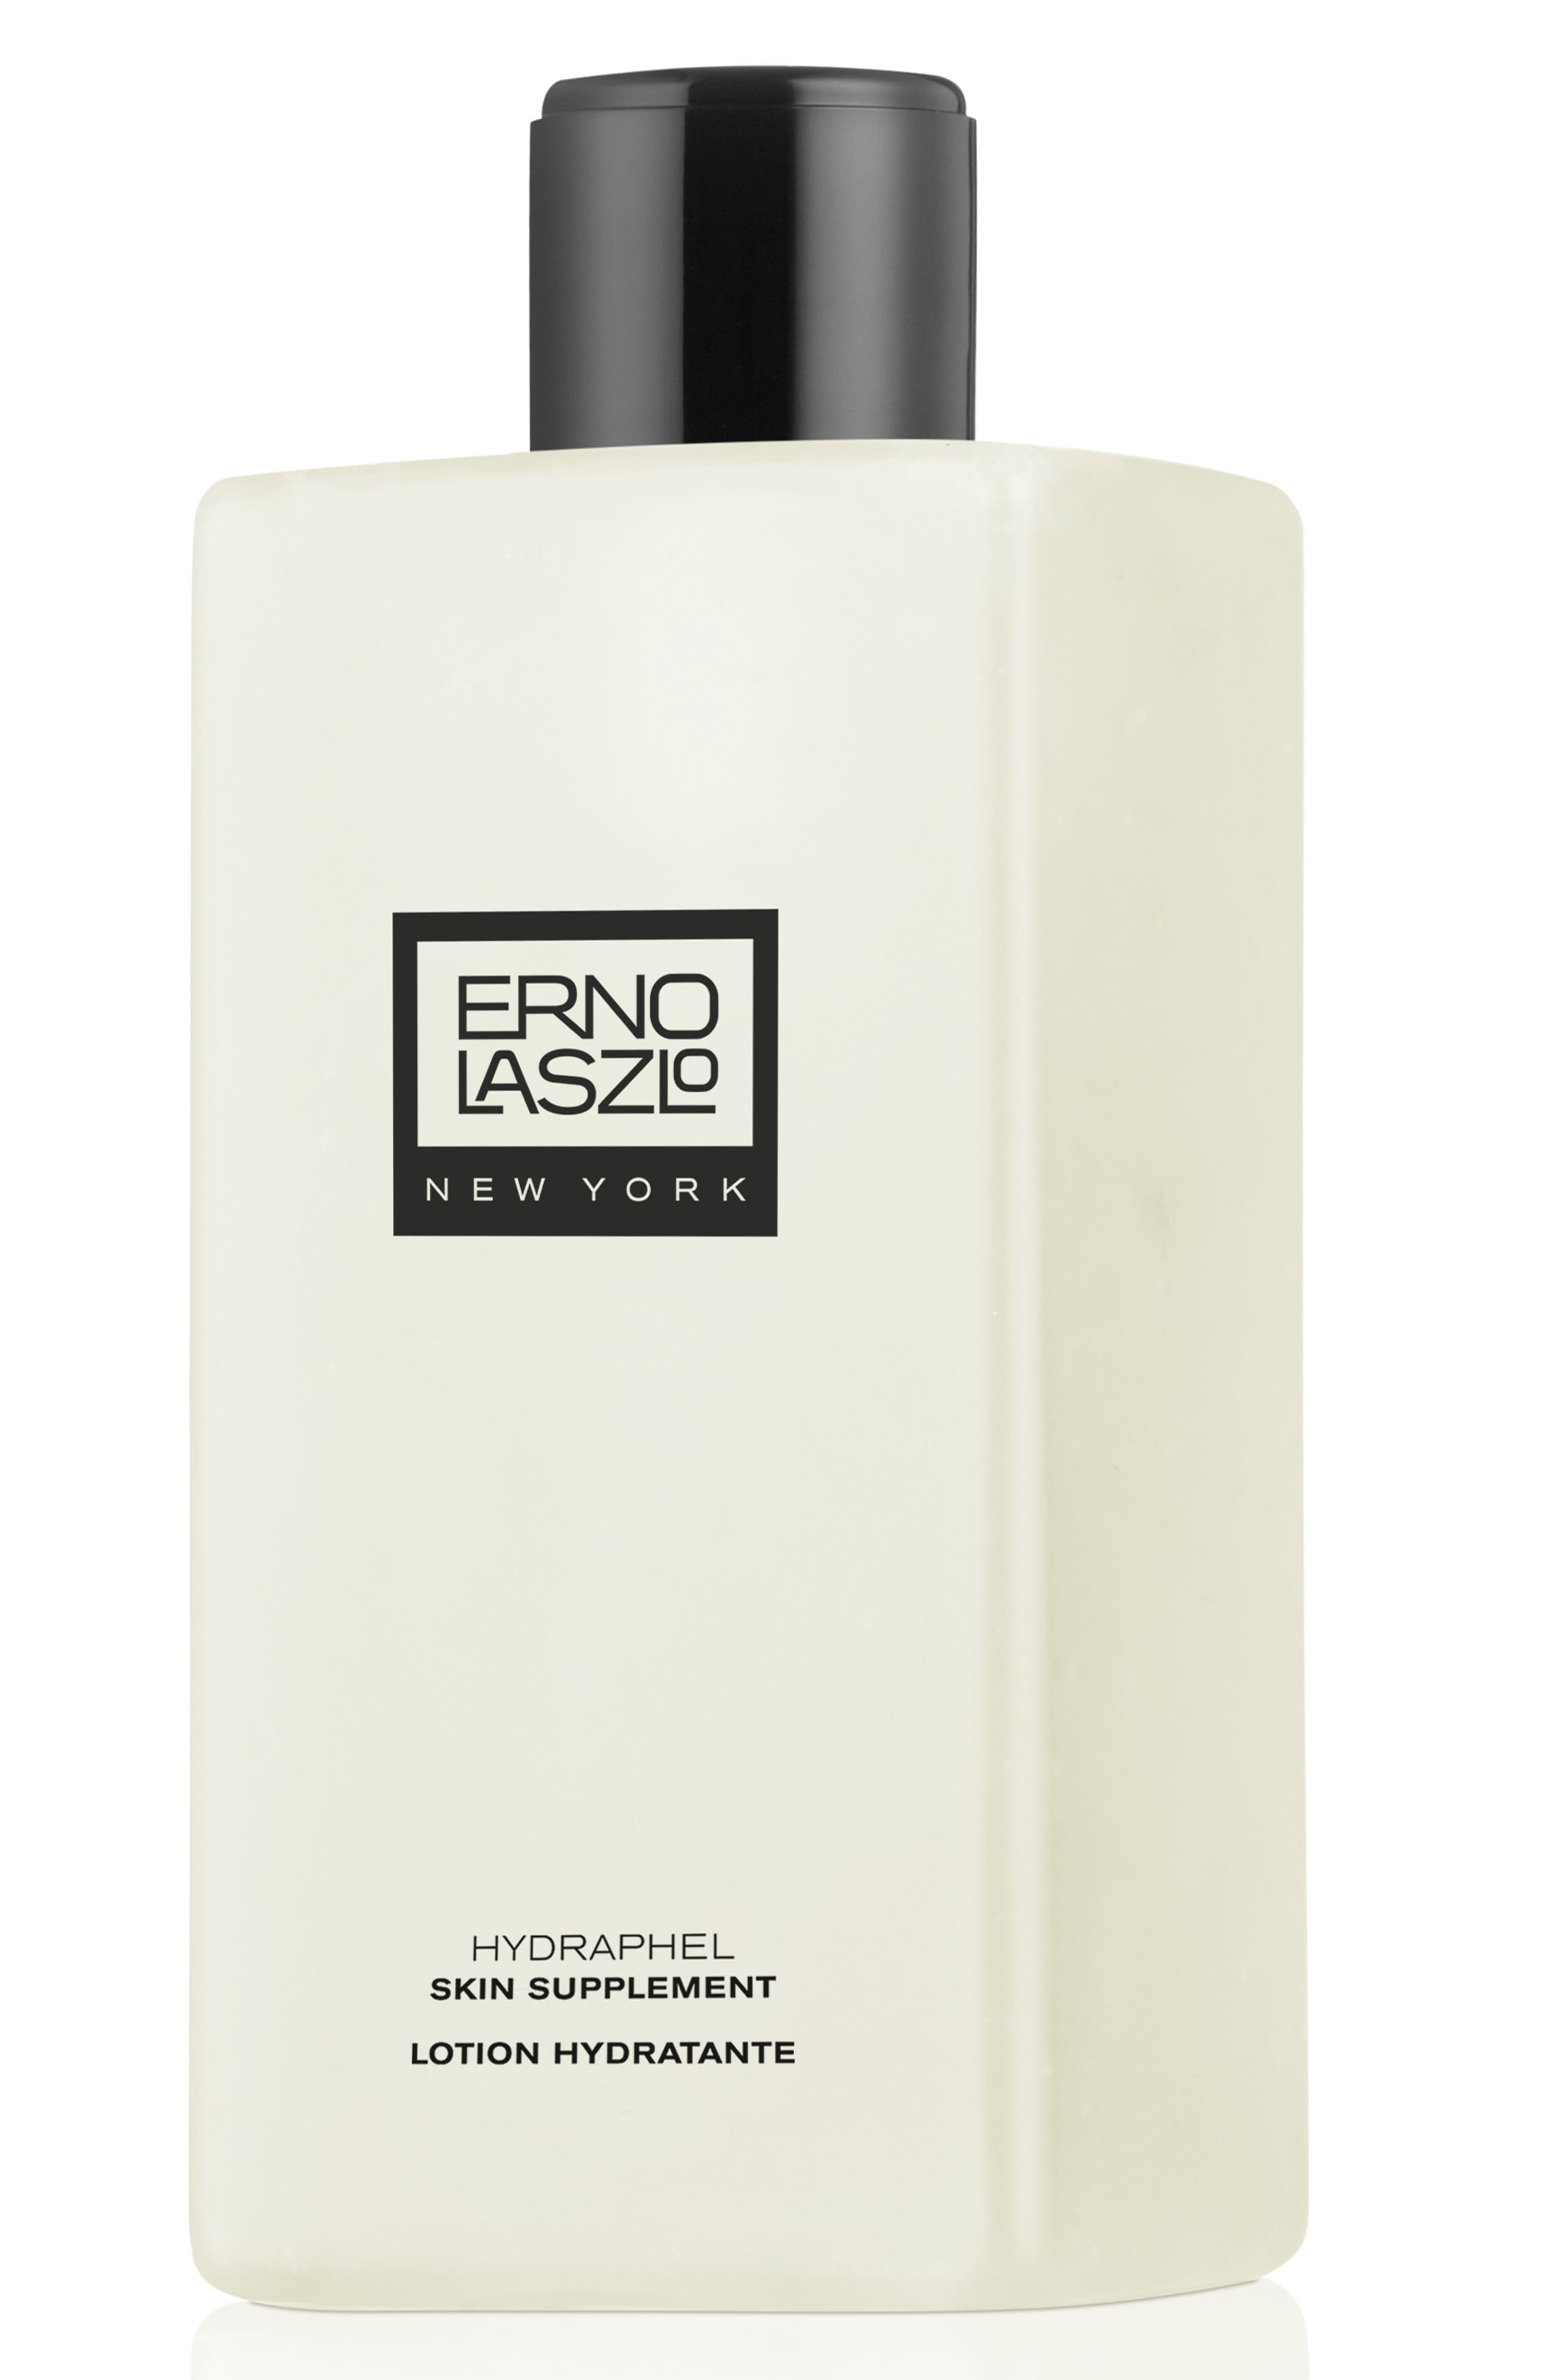 Erno Laszlo Hydraphel Skin Supplement Hydrating Toner, Size 6.8 Oz in No Color at Nordstrom